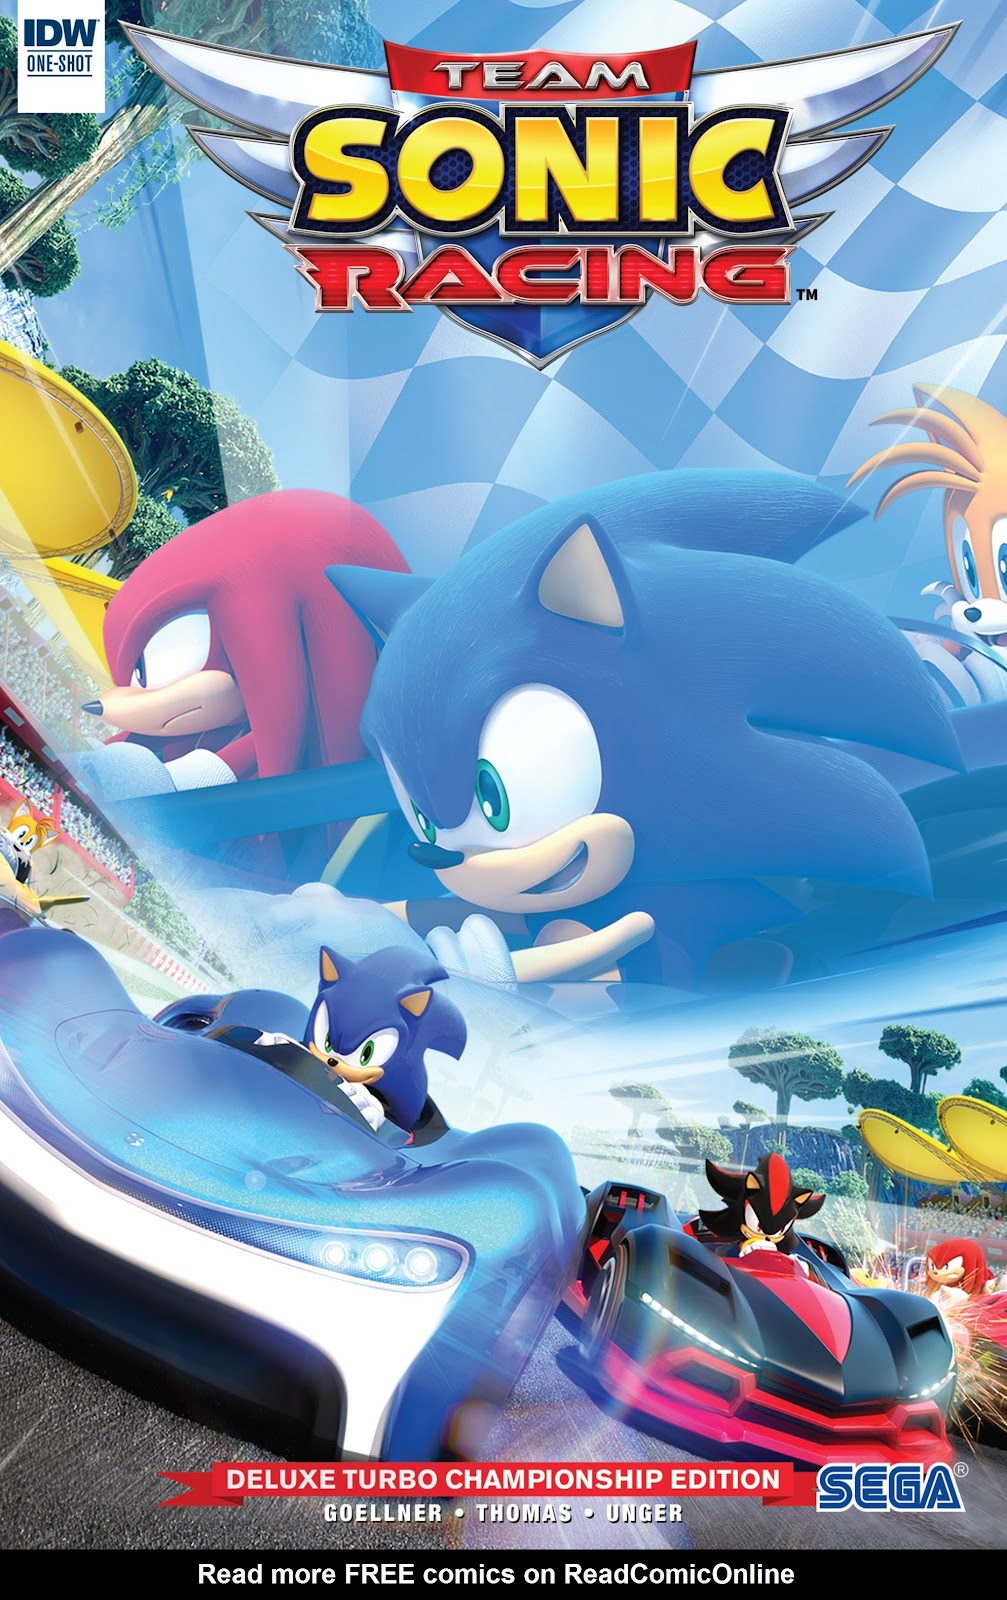 Team Sonic Racing Deluxe Turbo Championship Edition Full Page 1